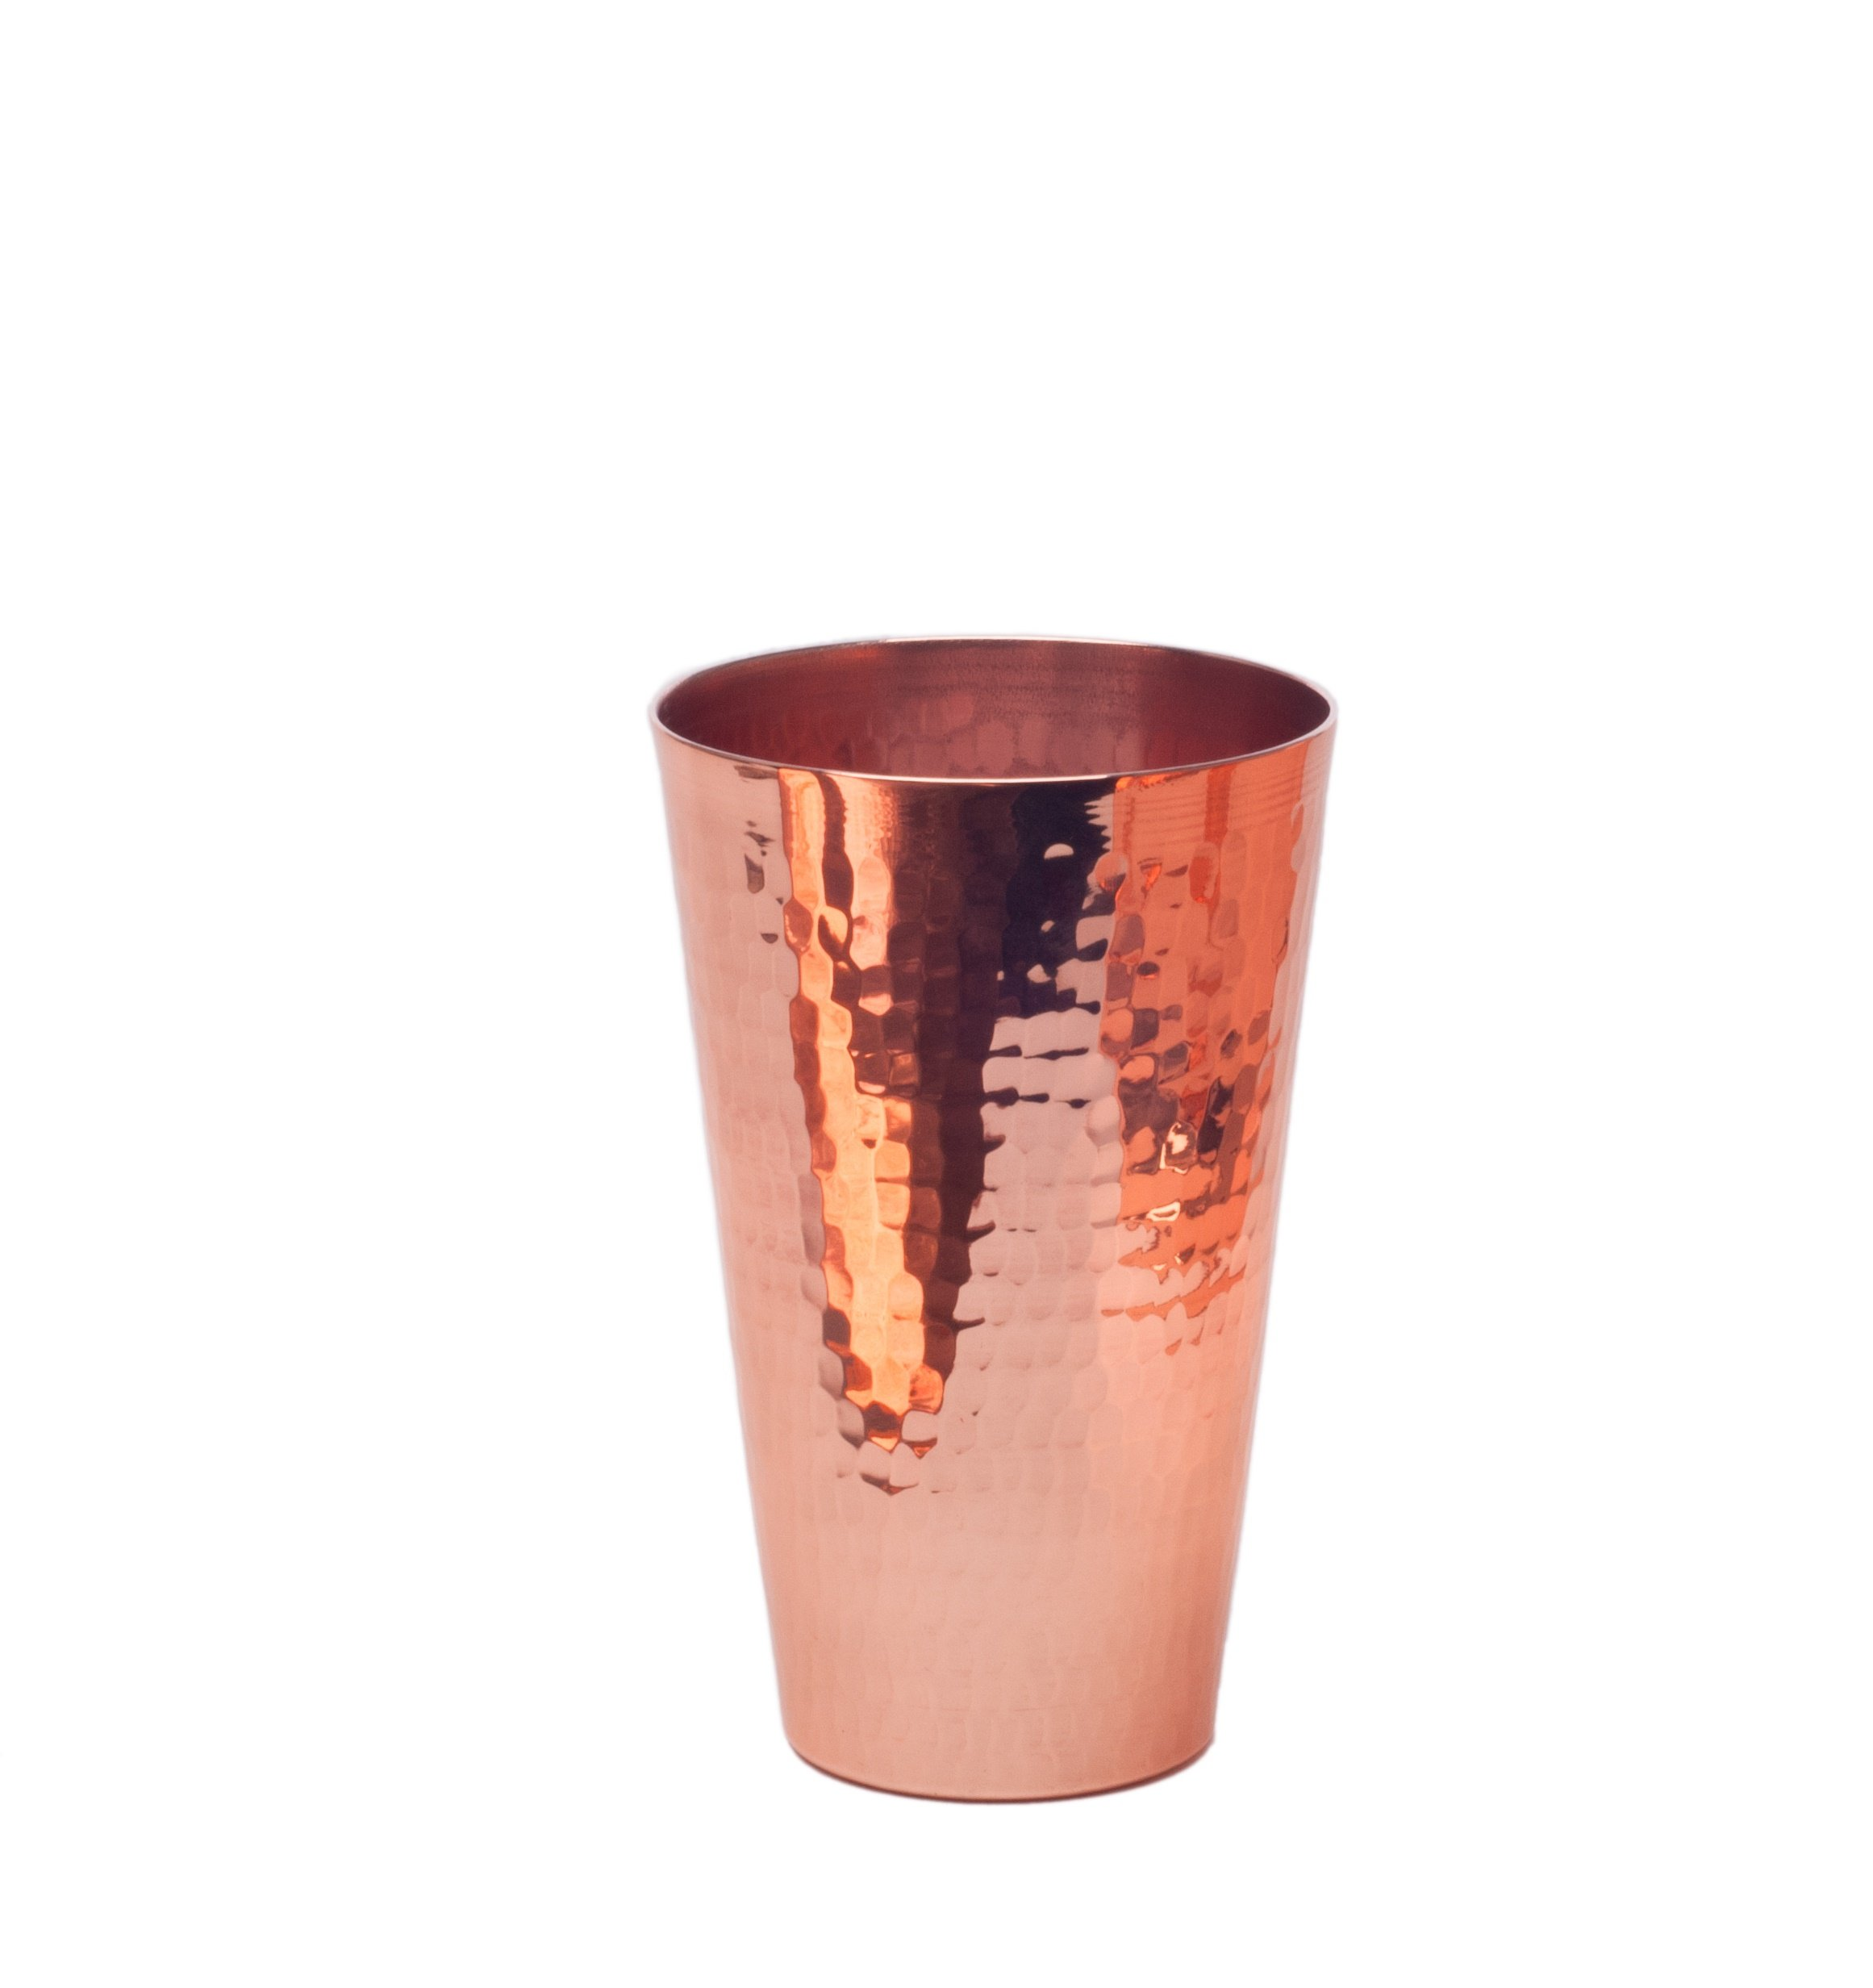 Sertodo Copper C-SHK-18 Ice Tea Cup, 18 Ounce, Copper